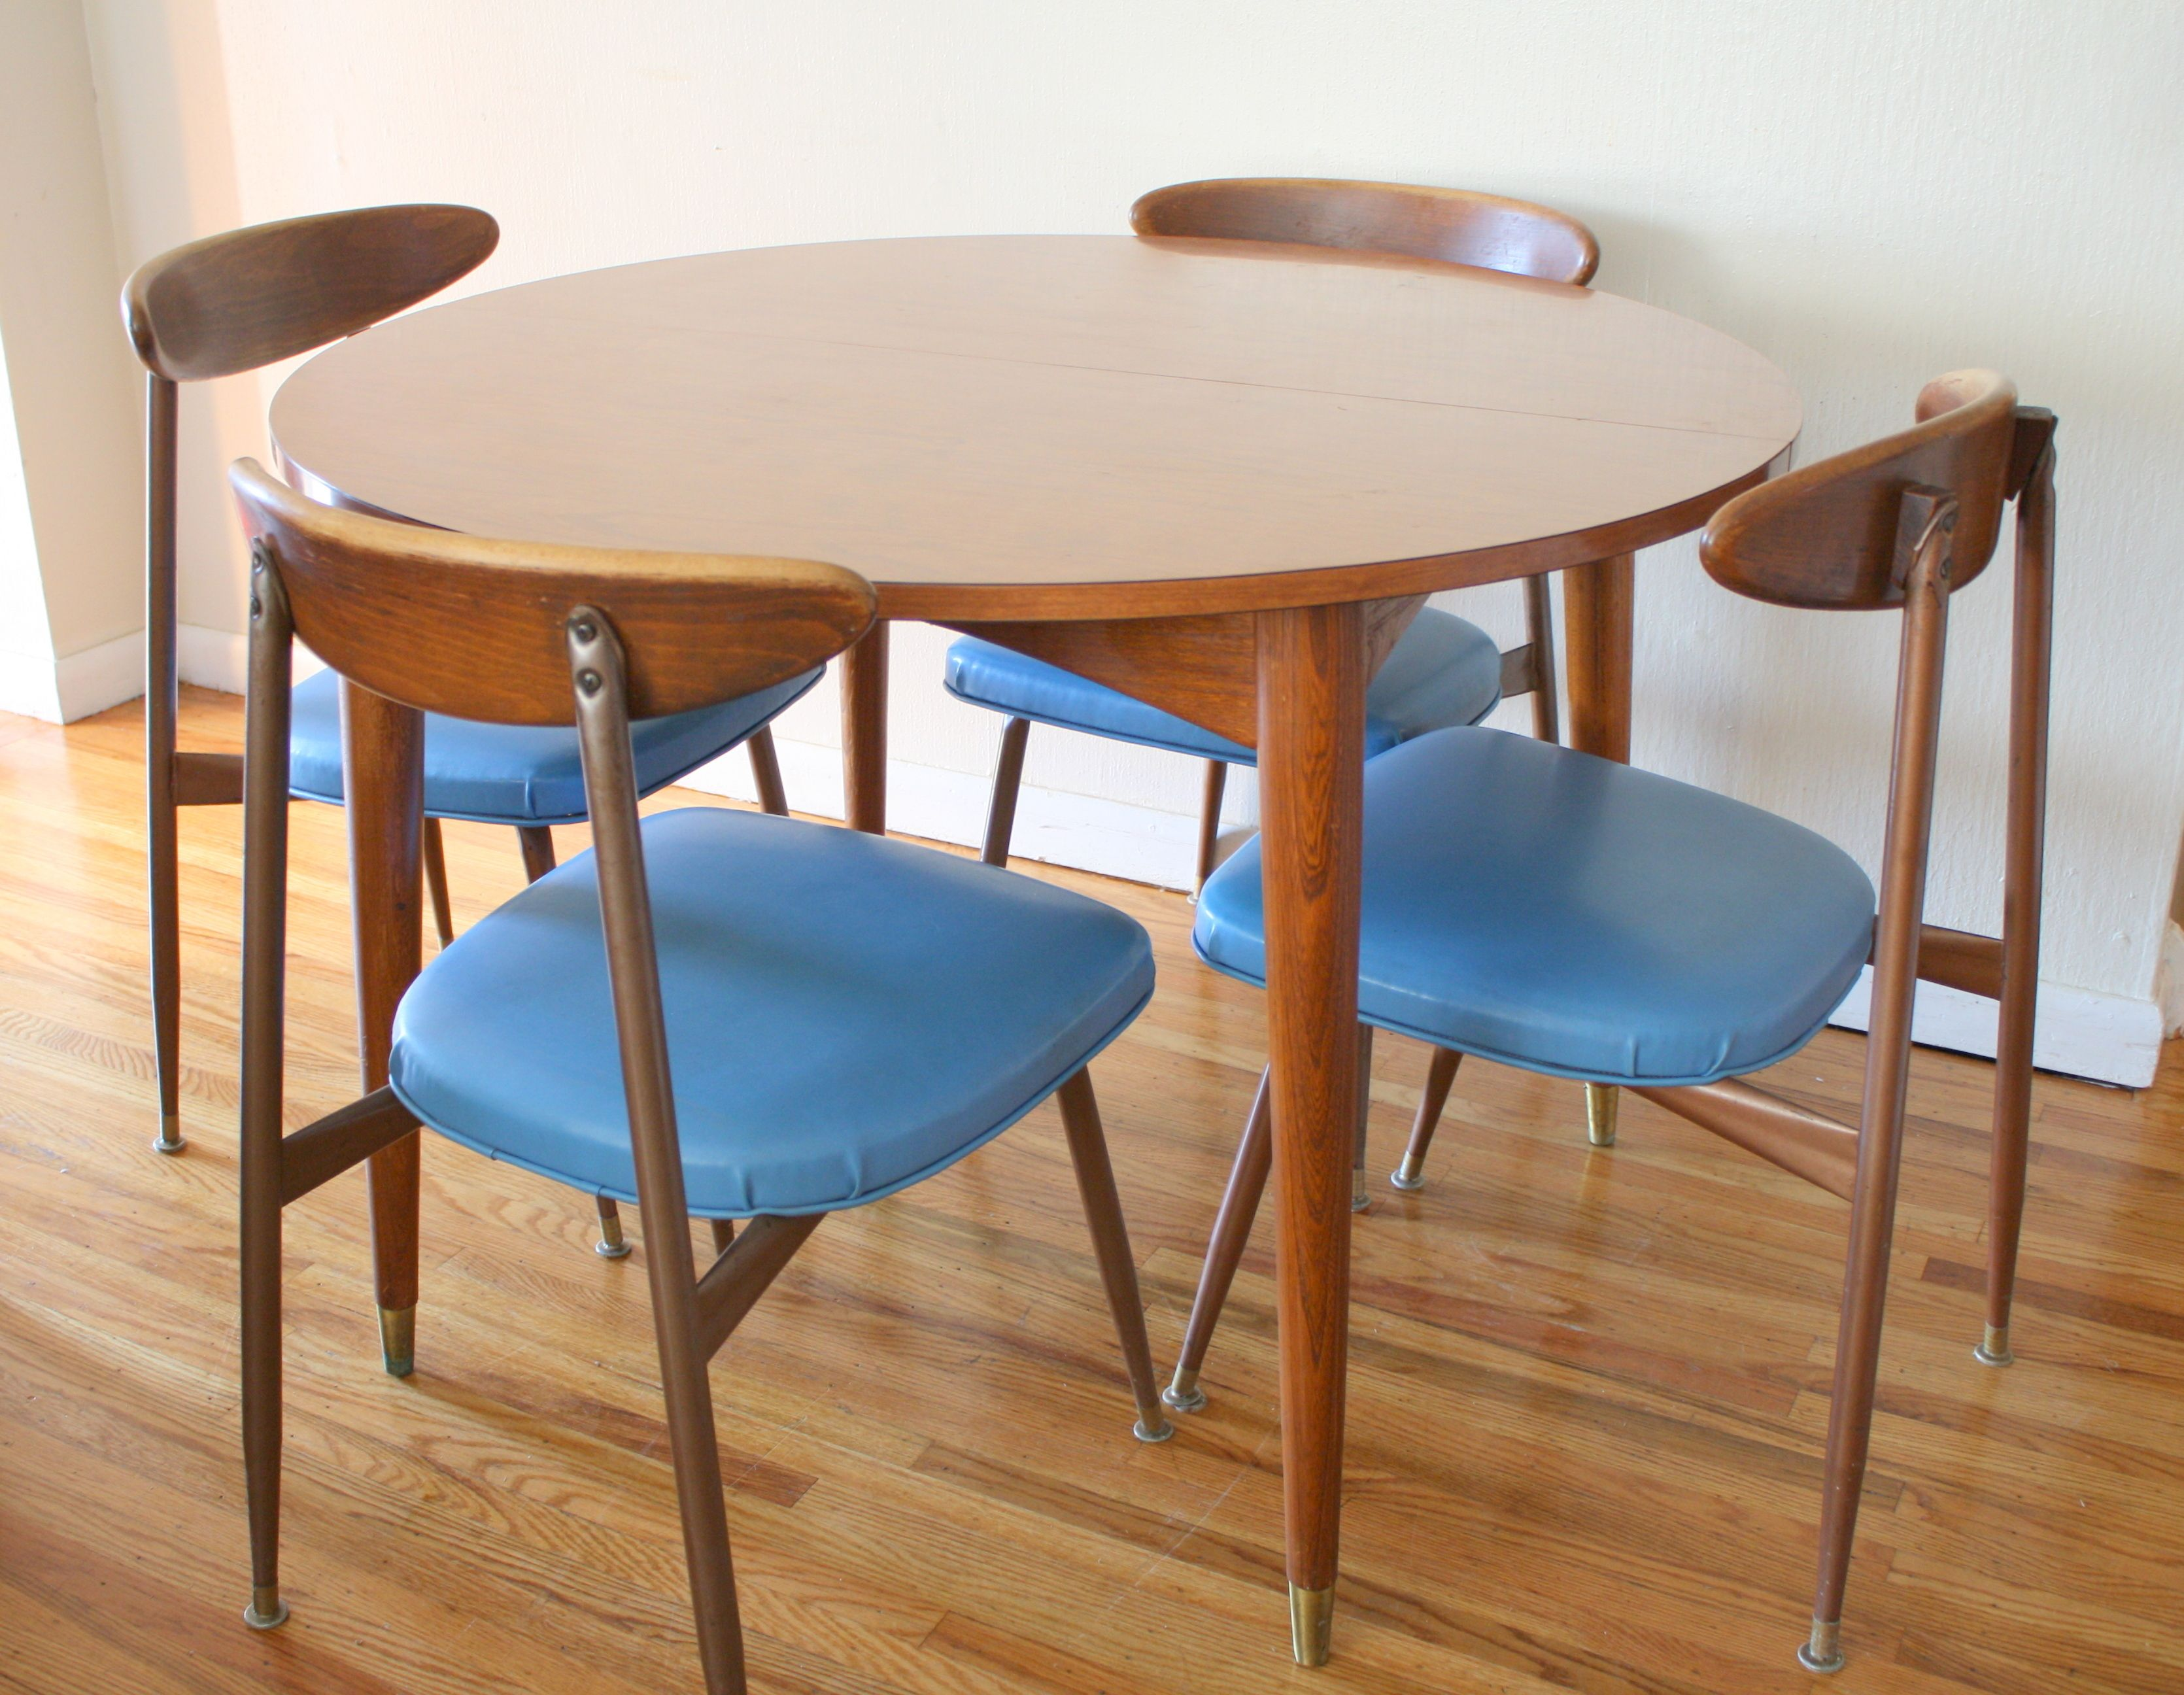 Pin By Jerome Humbert On For The Home Modern Kitchen Tables Mid Century Round Dining Table Modern Kitchen Chair